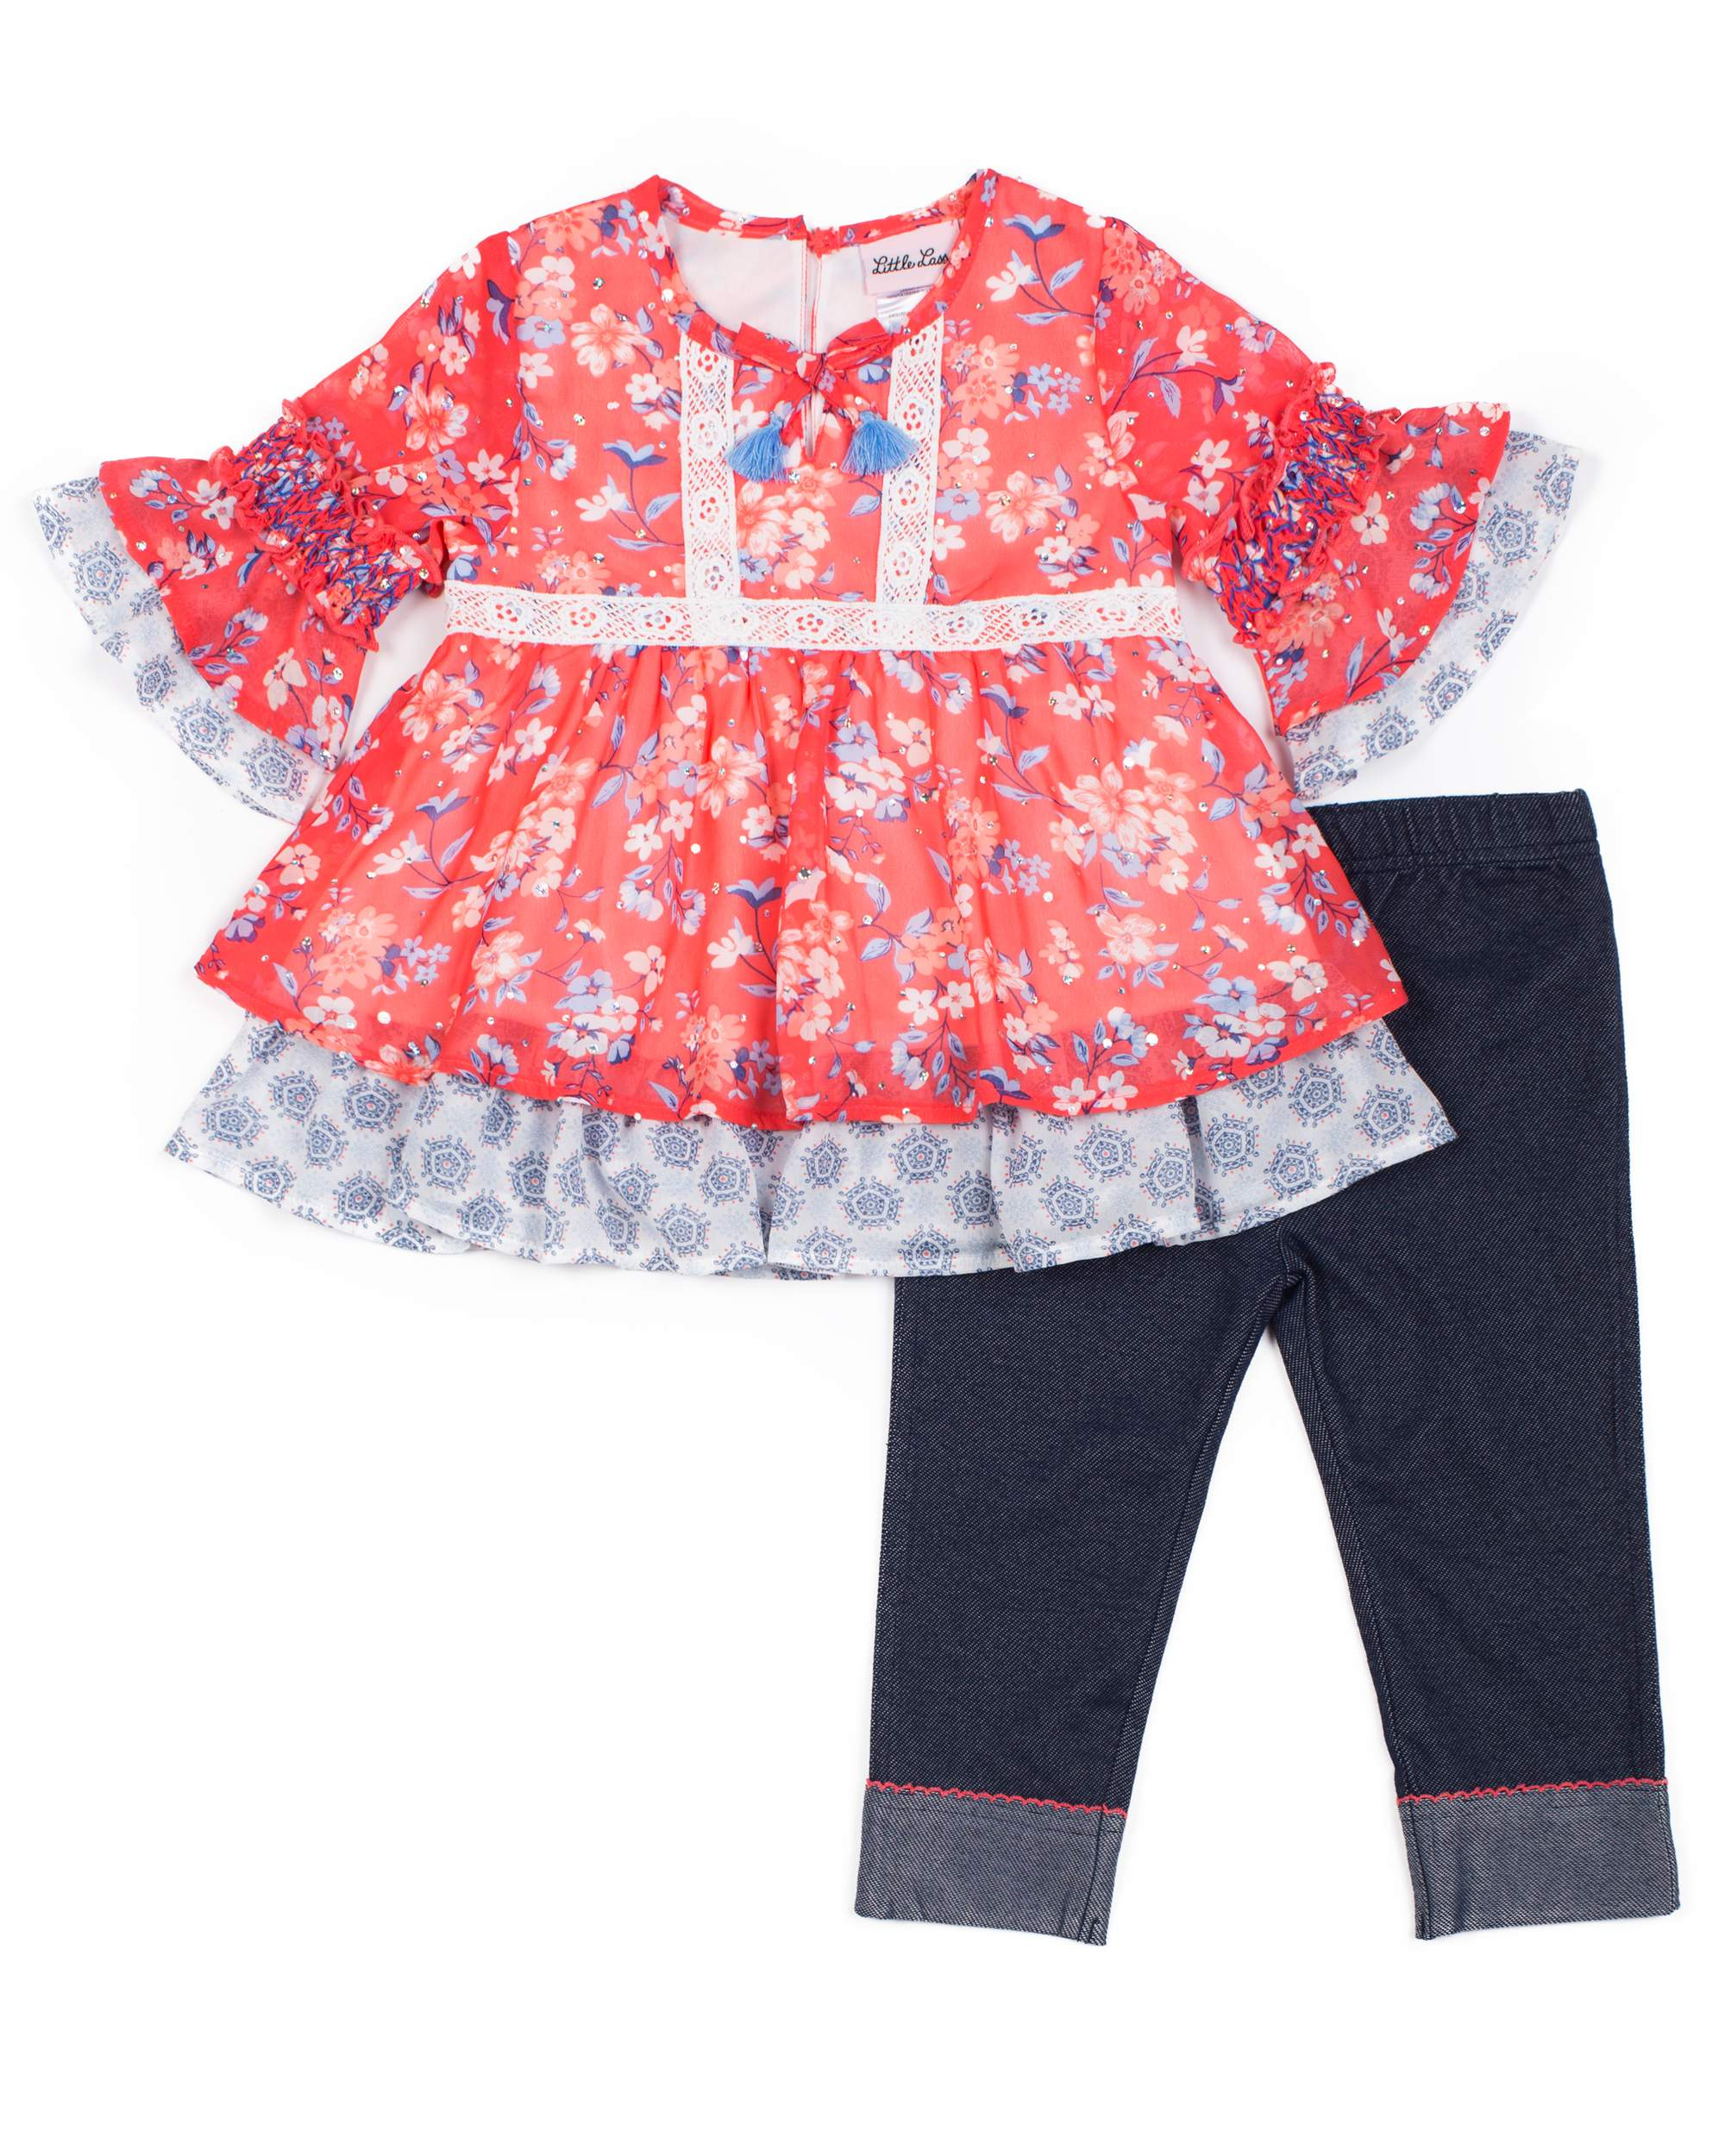 Girls I/'m Bringing Sass to the Class Pink Sequin Skirt Outfit Accessories 4t-9